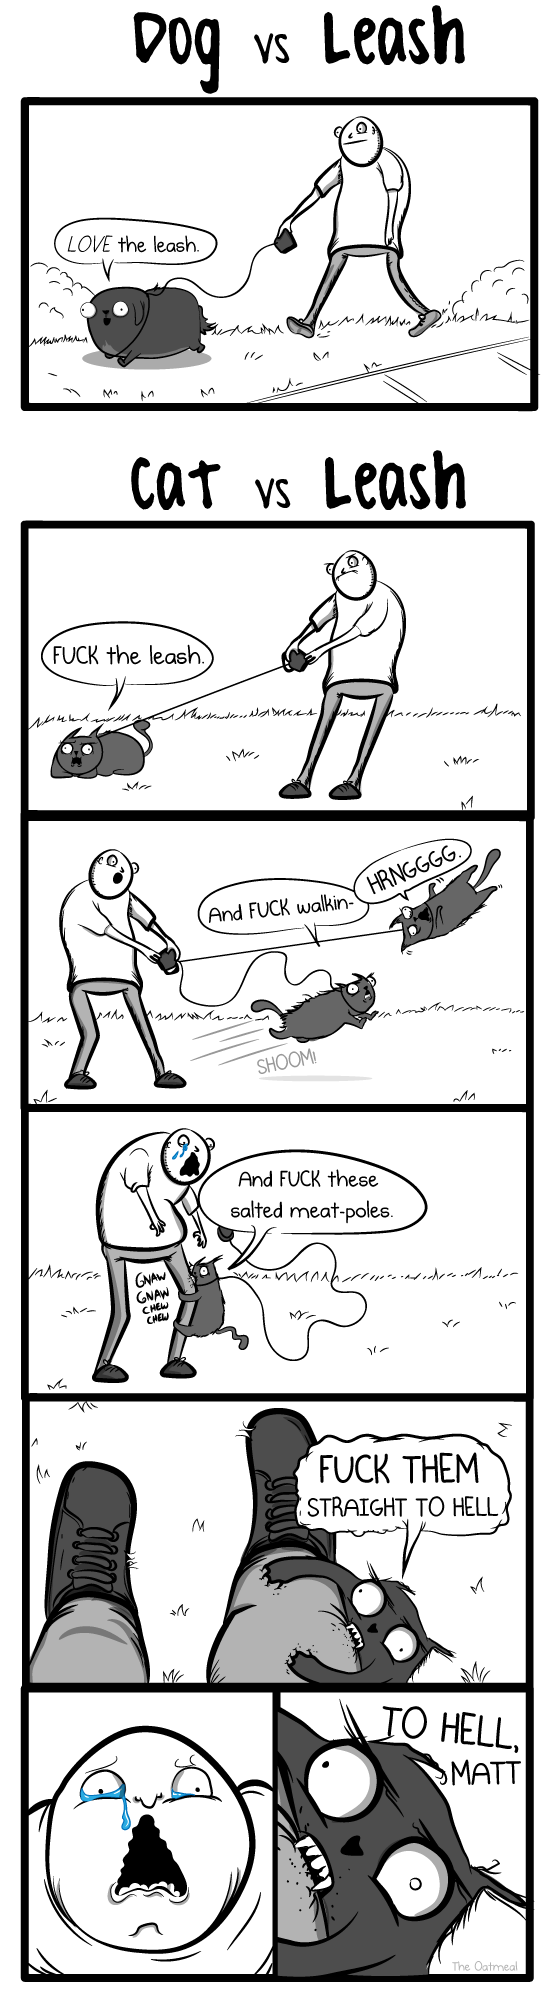 Cat Versus Leash